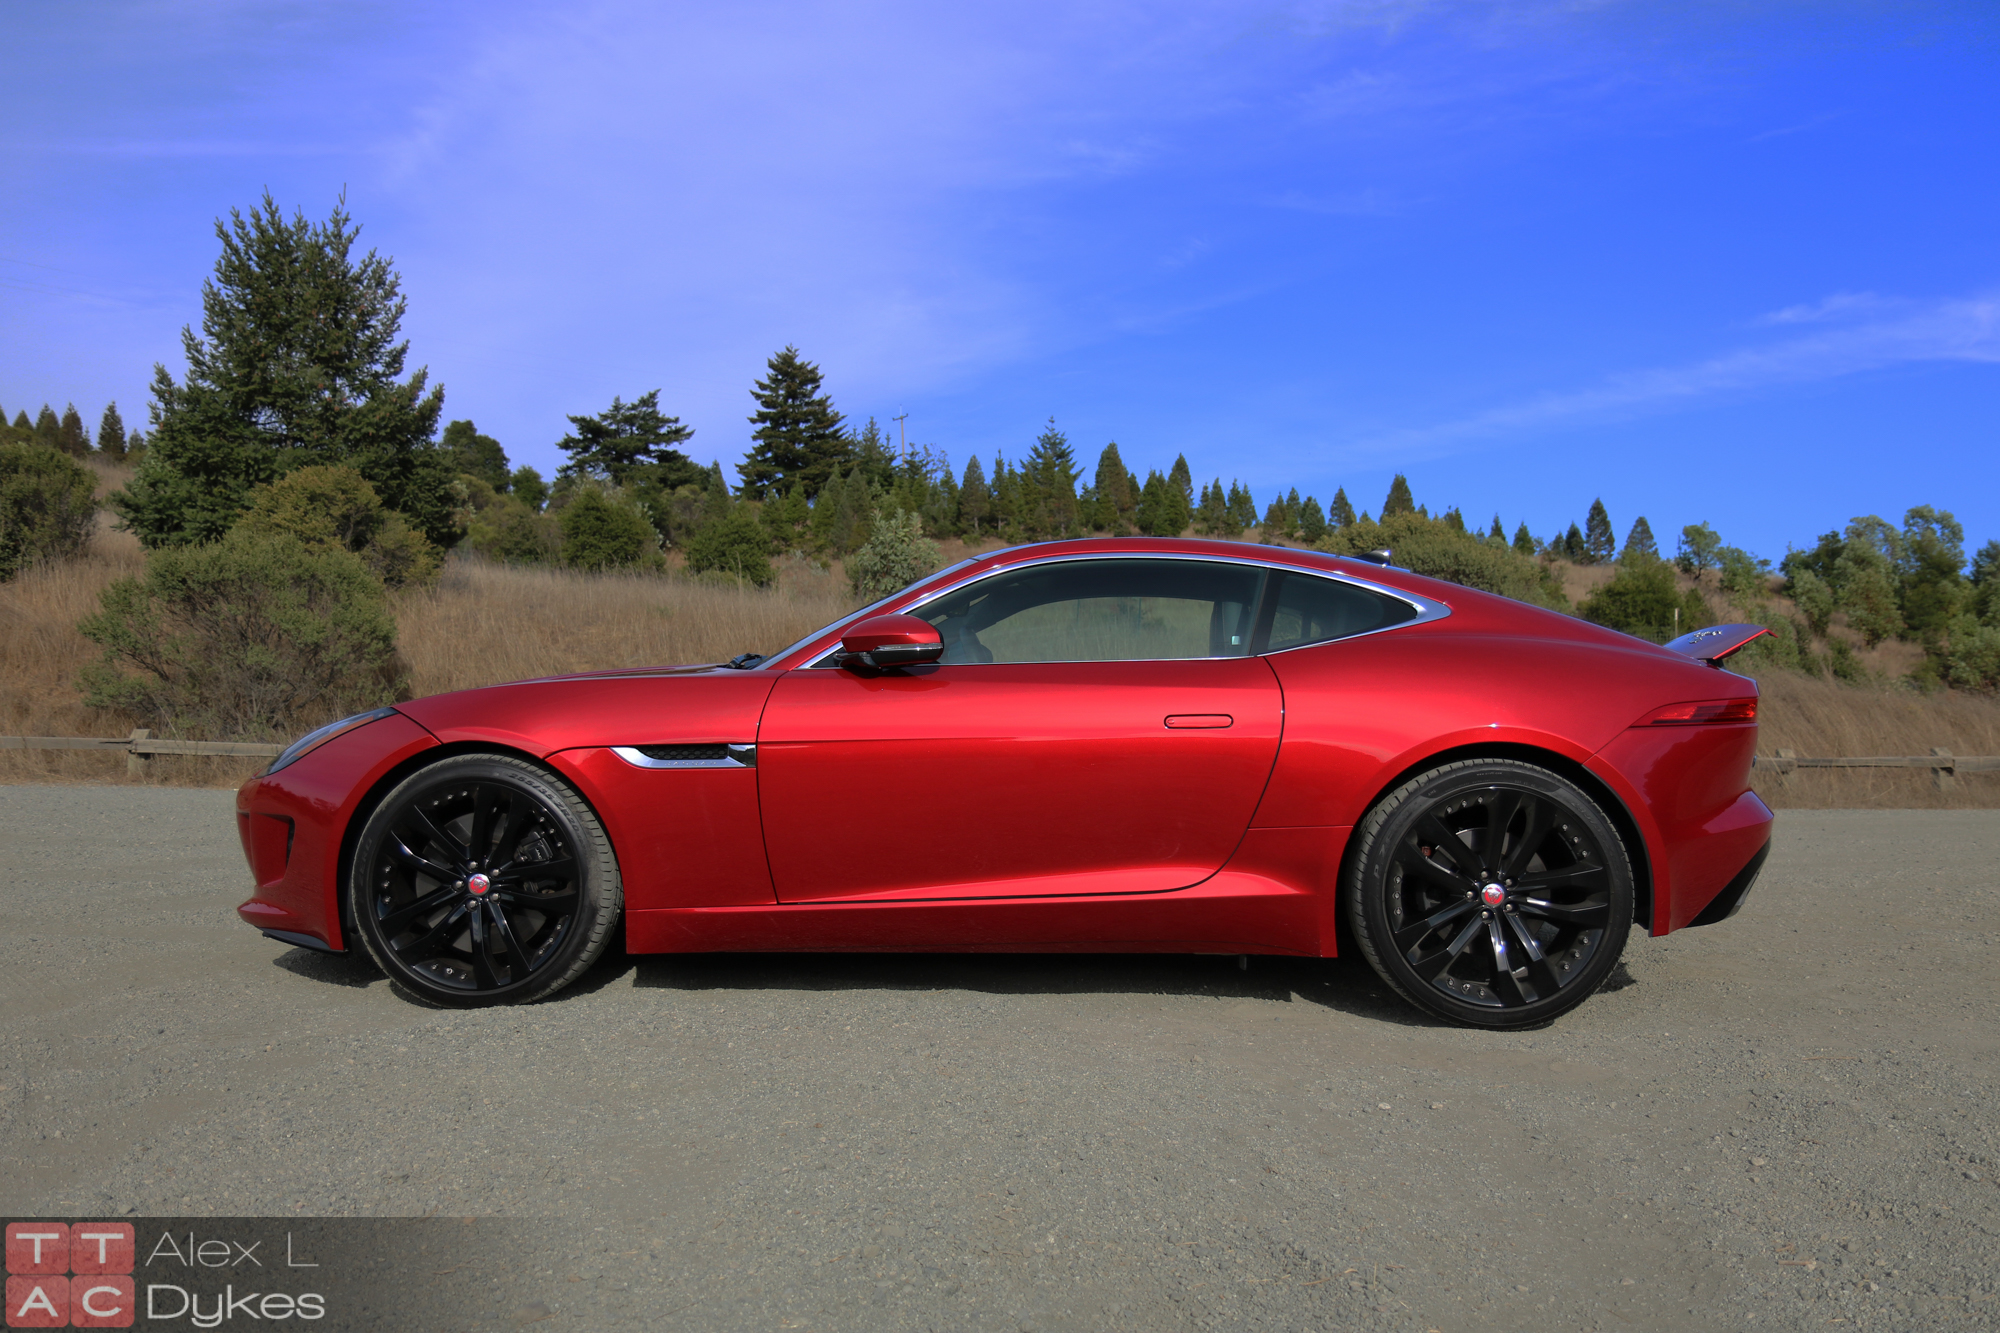 2016 Jaguar F Type S Exterior 001 The Truth About Cars